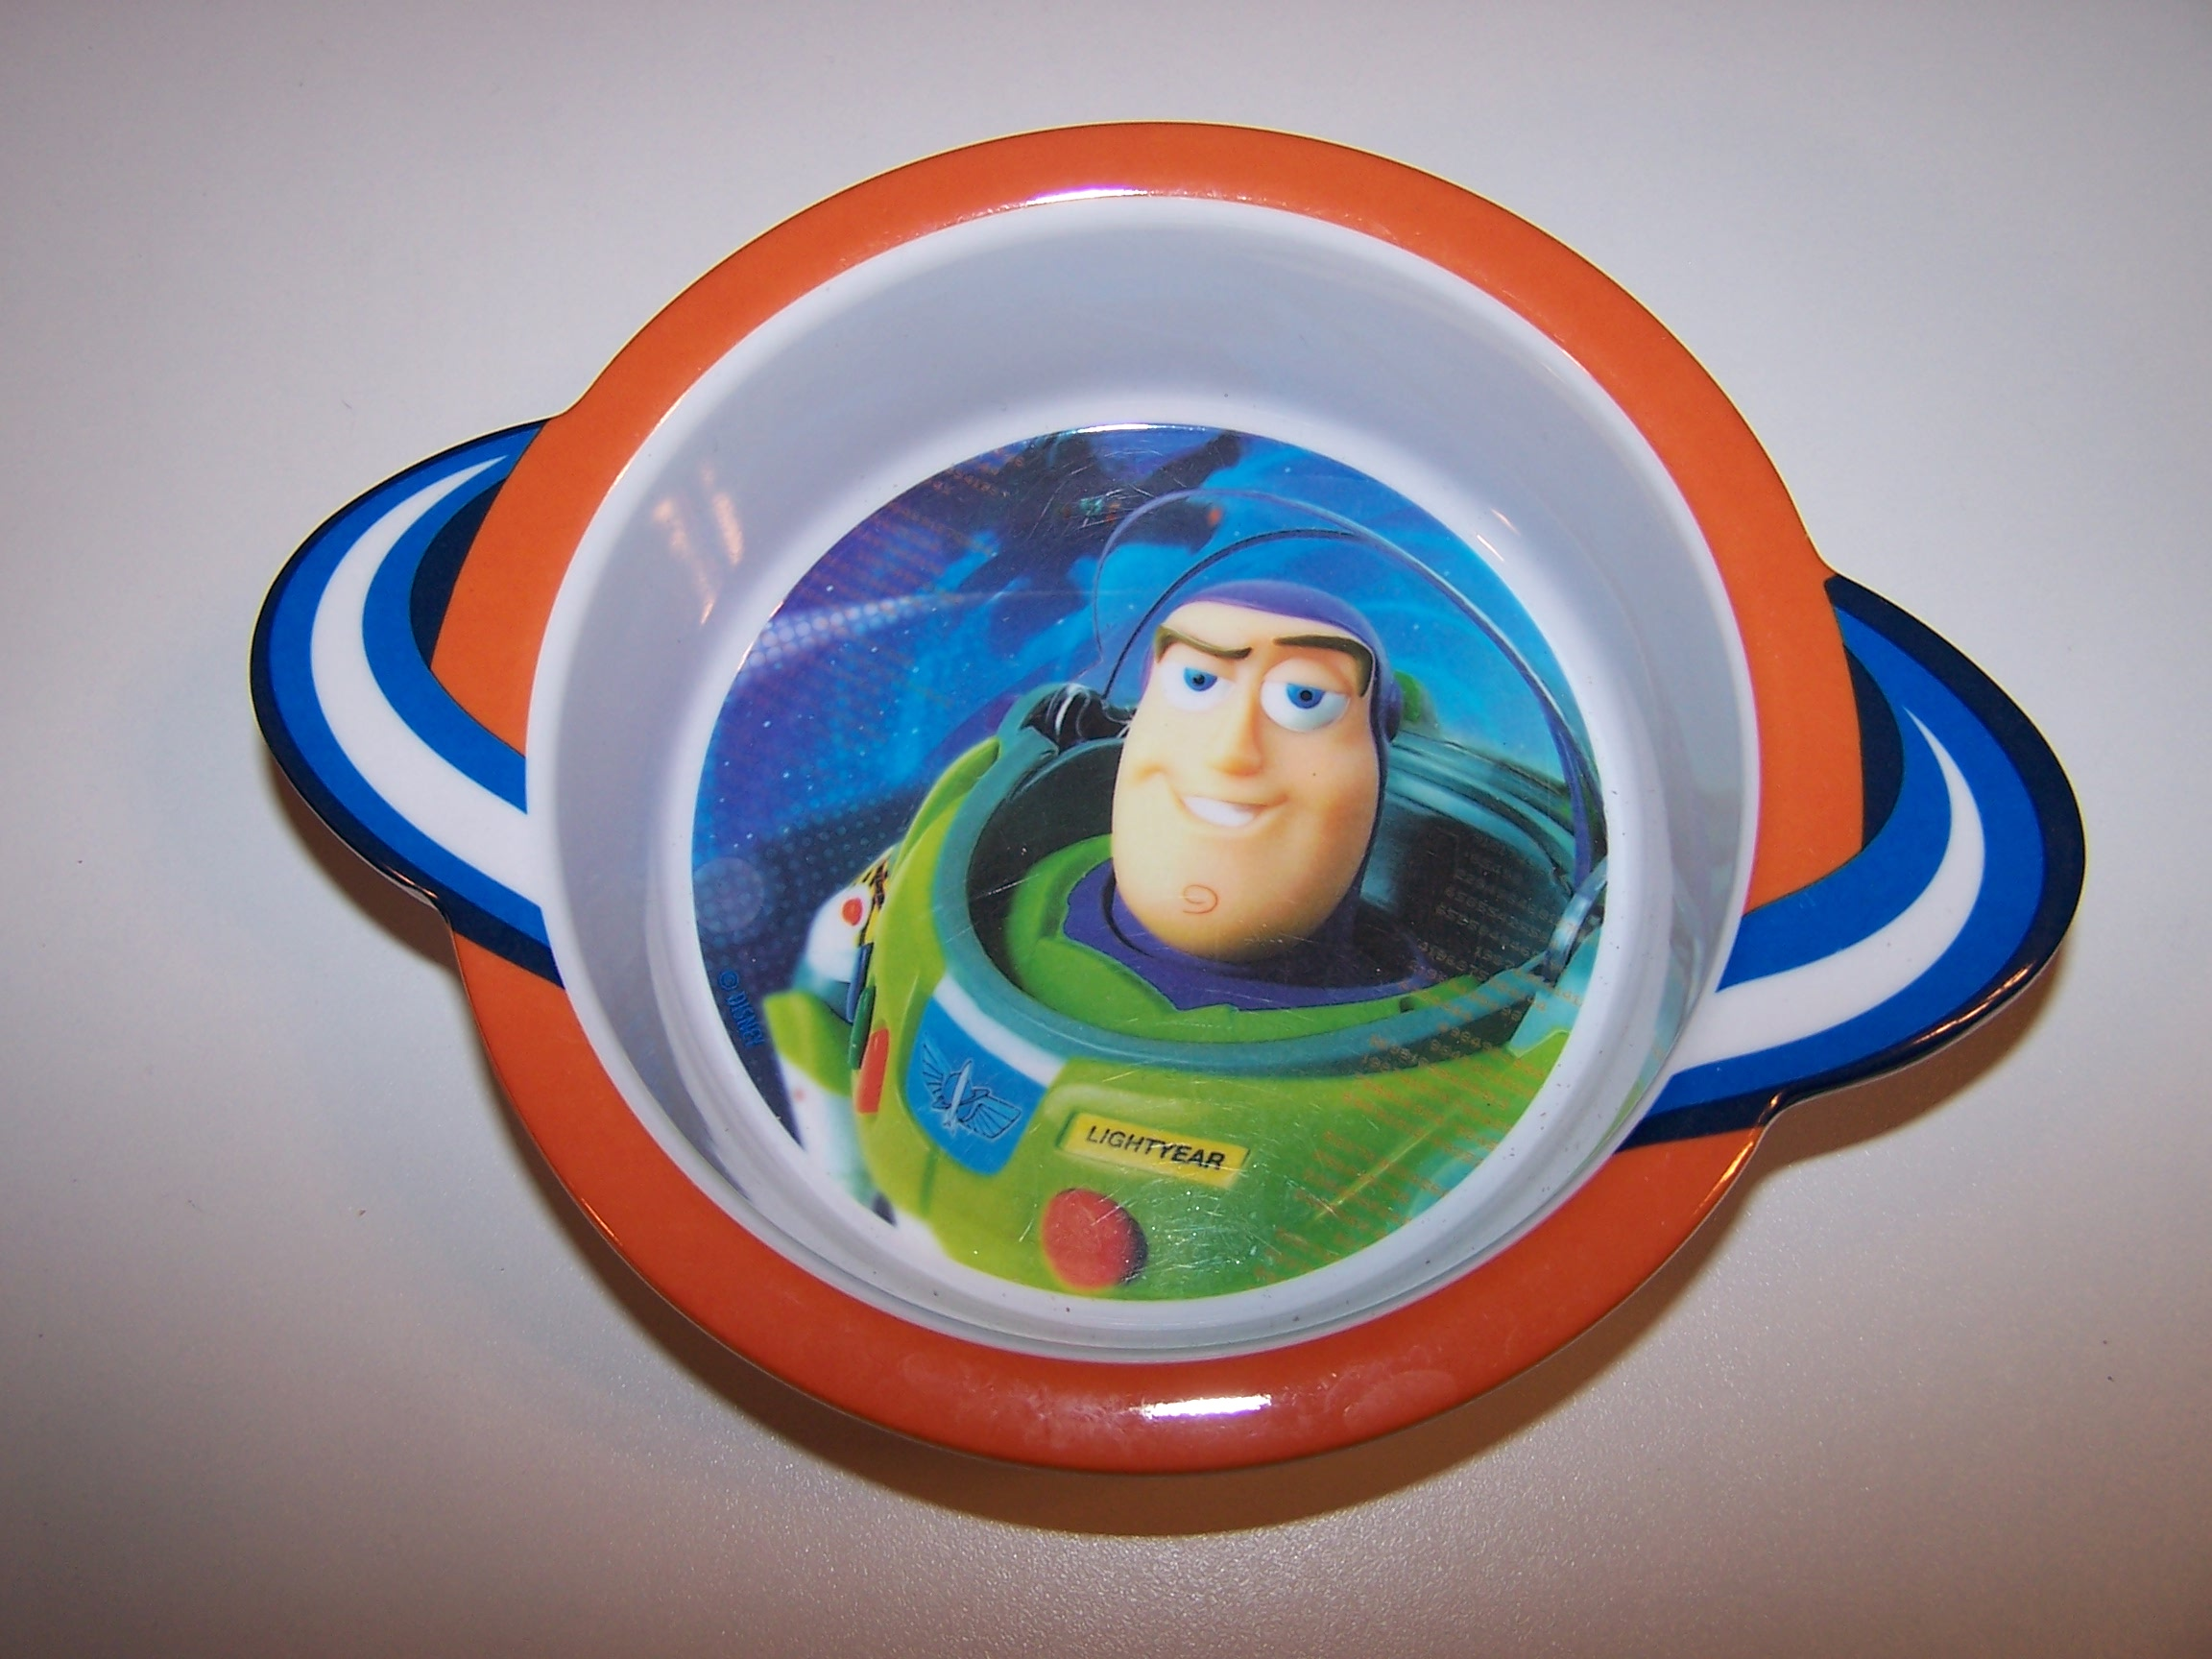 Buzz Lightyear Cereal Bowl, Child Size, Plastic, Disney